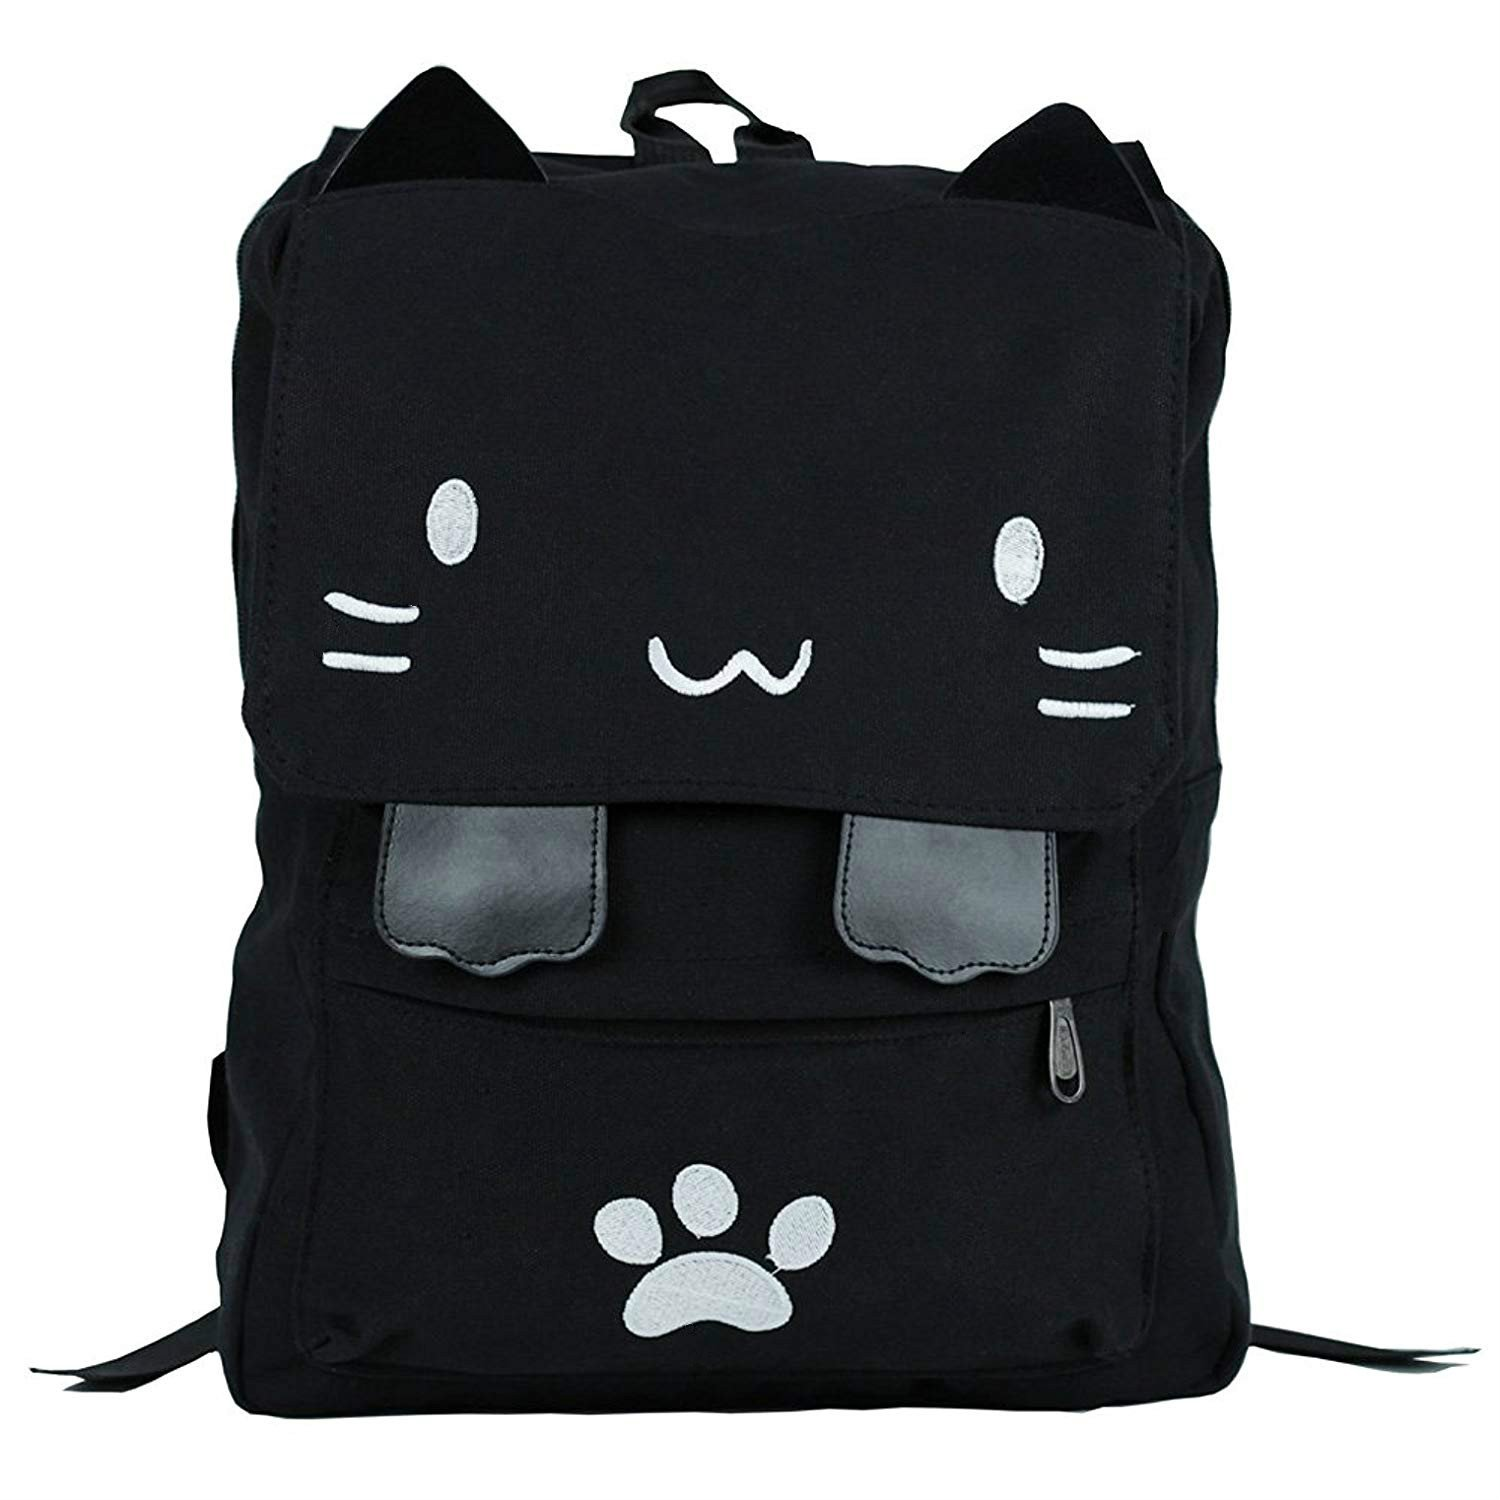 Sprite Beat Cute Canvas Cat Print Backpack School Bag Light weight Book Bags Ruchsack College Backpack Daypack Backpacks for Girls/Boys (White)